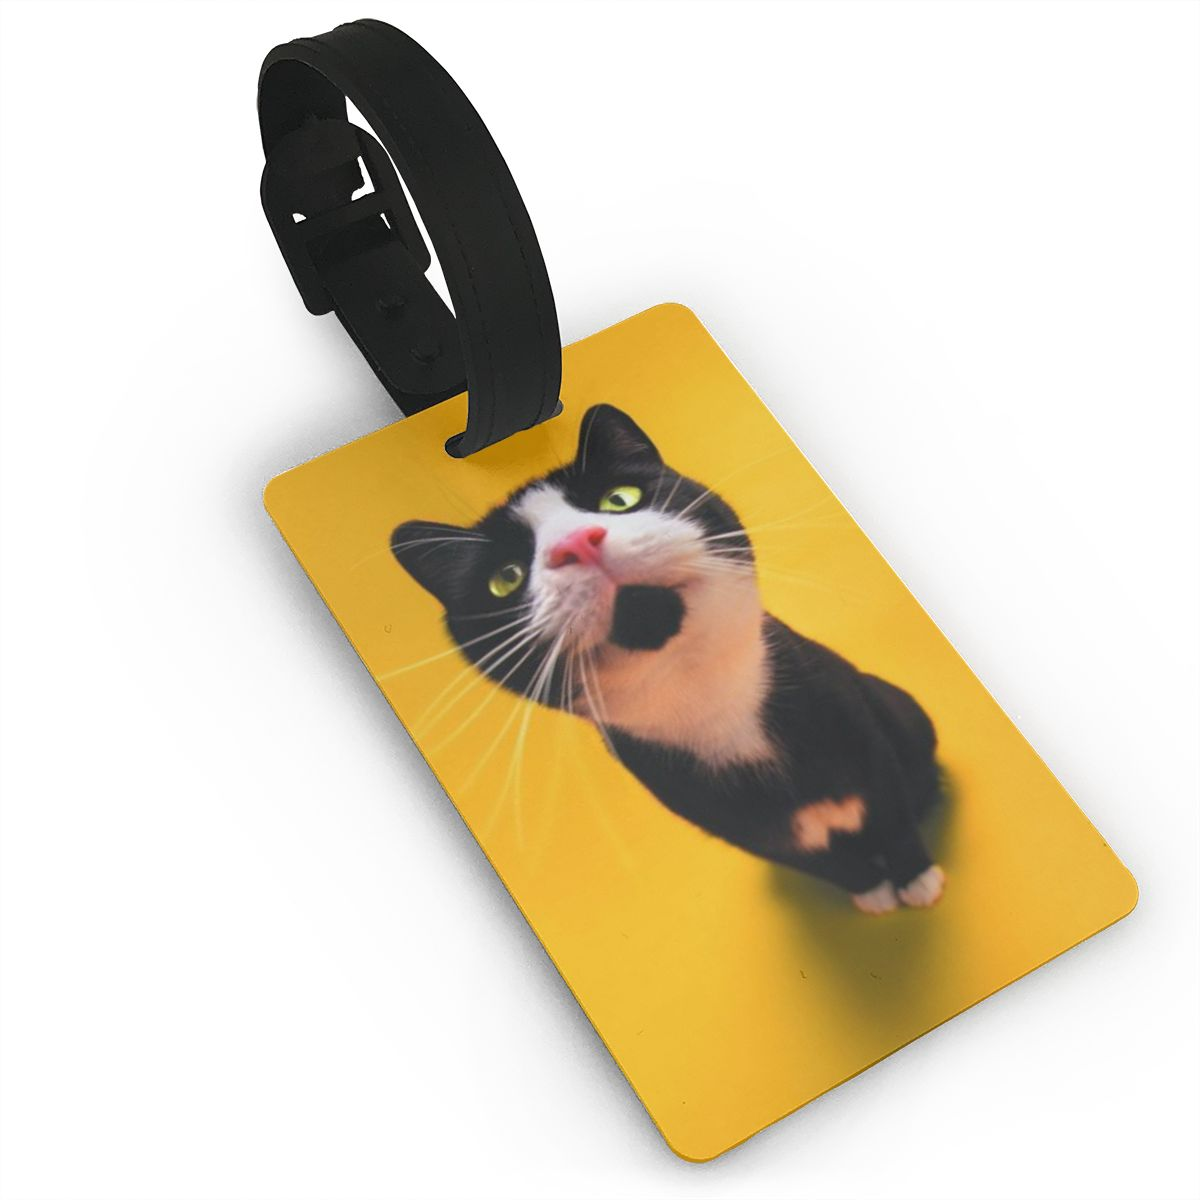 NOISYDESIGNS New PVC Travel Luggage Baggage Tag Animals Cat Print Yellow Suitcase Identity Address Name Labels Drop Shipping